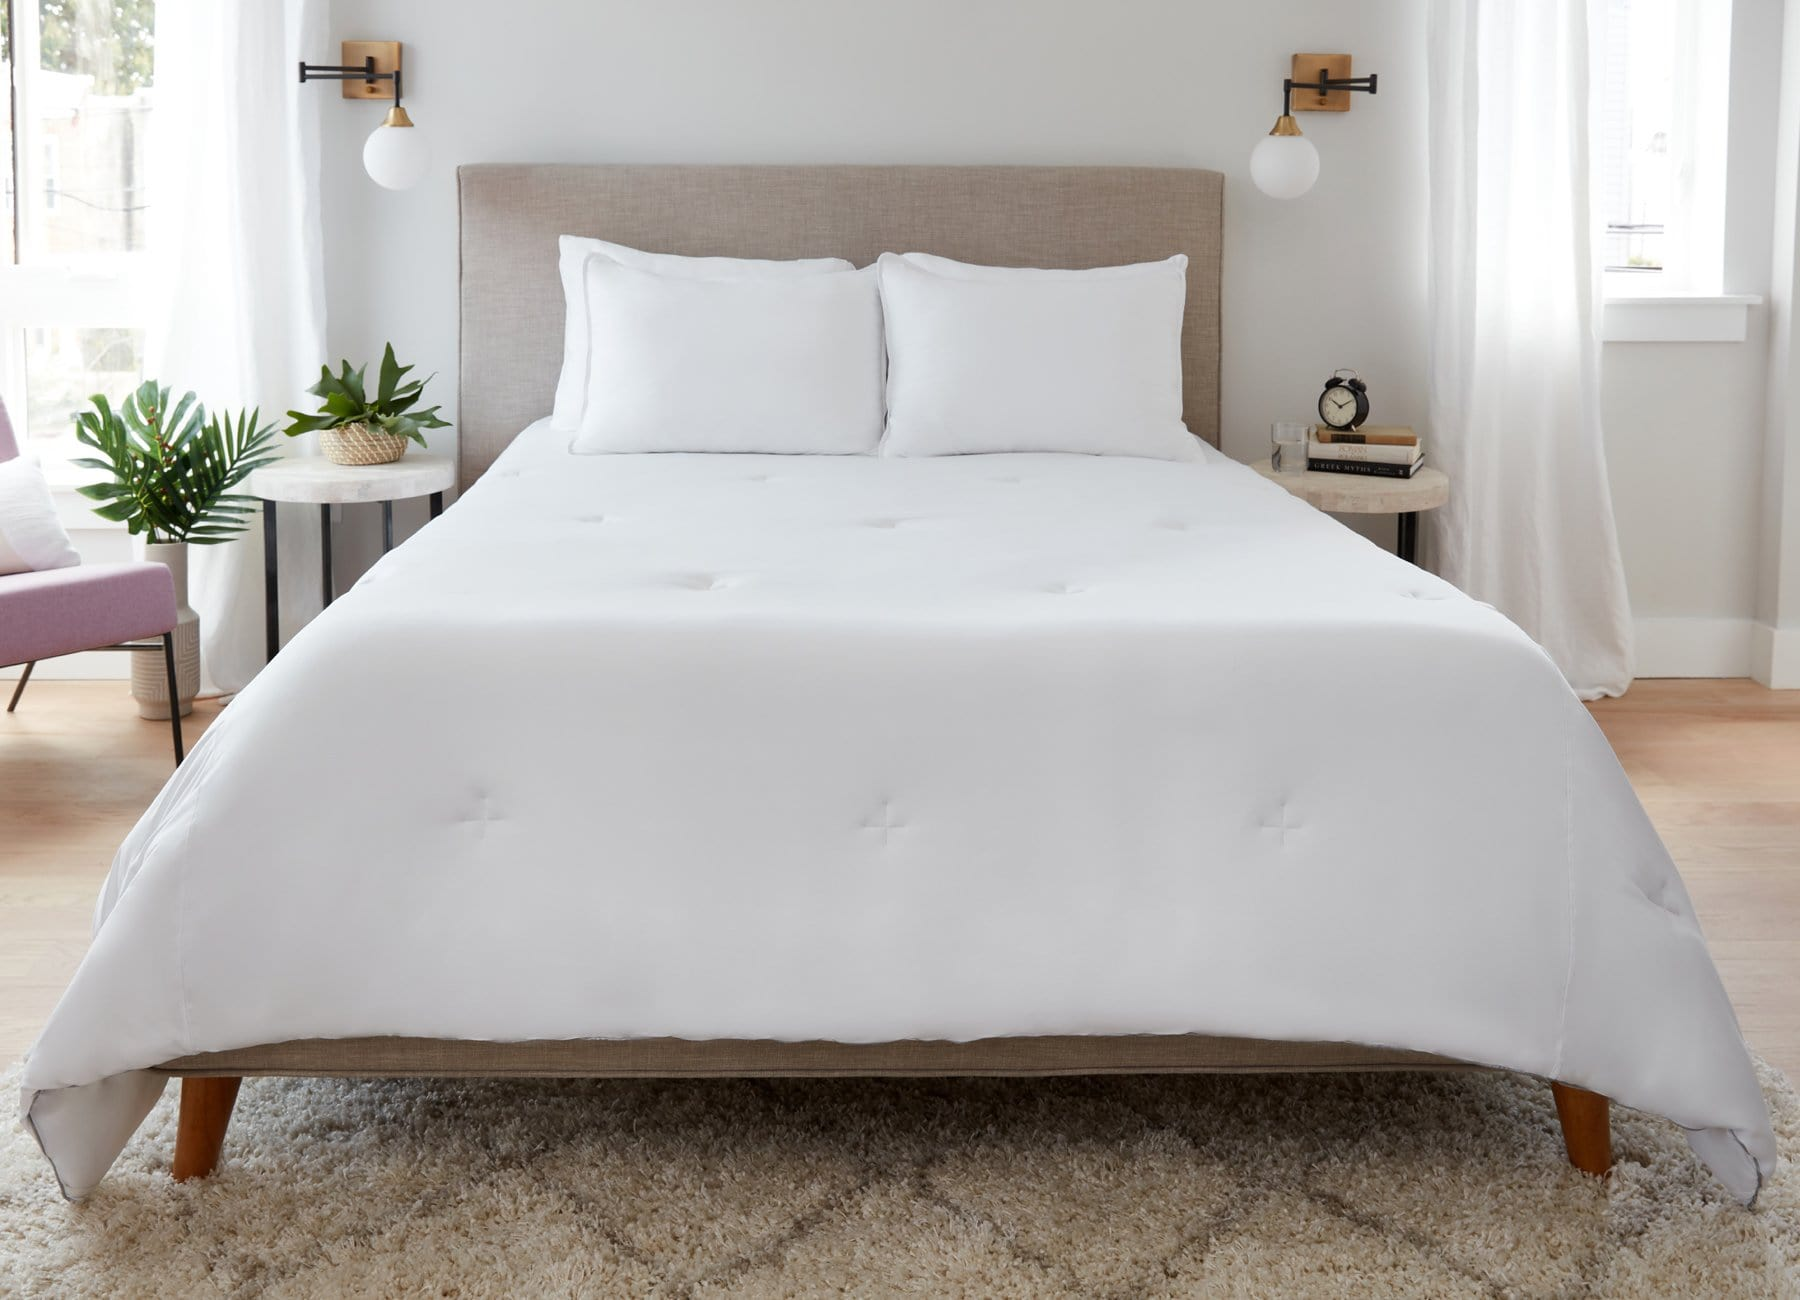 Original Performance All Season Comforter on bed